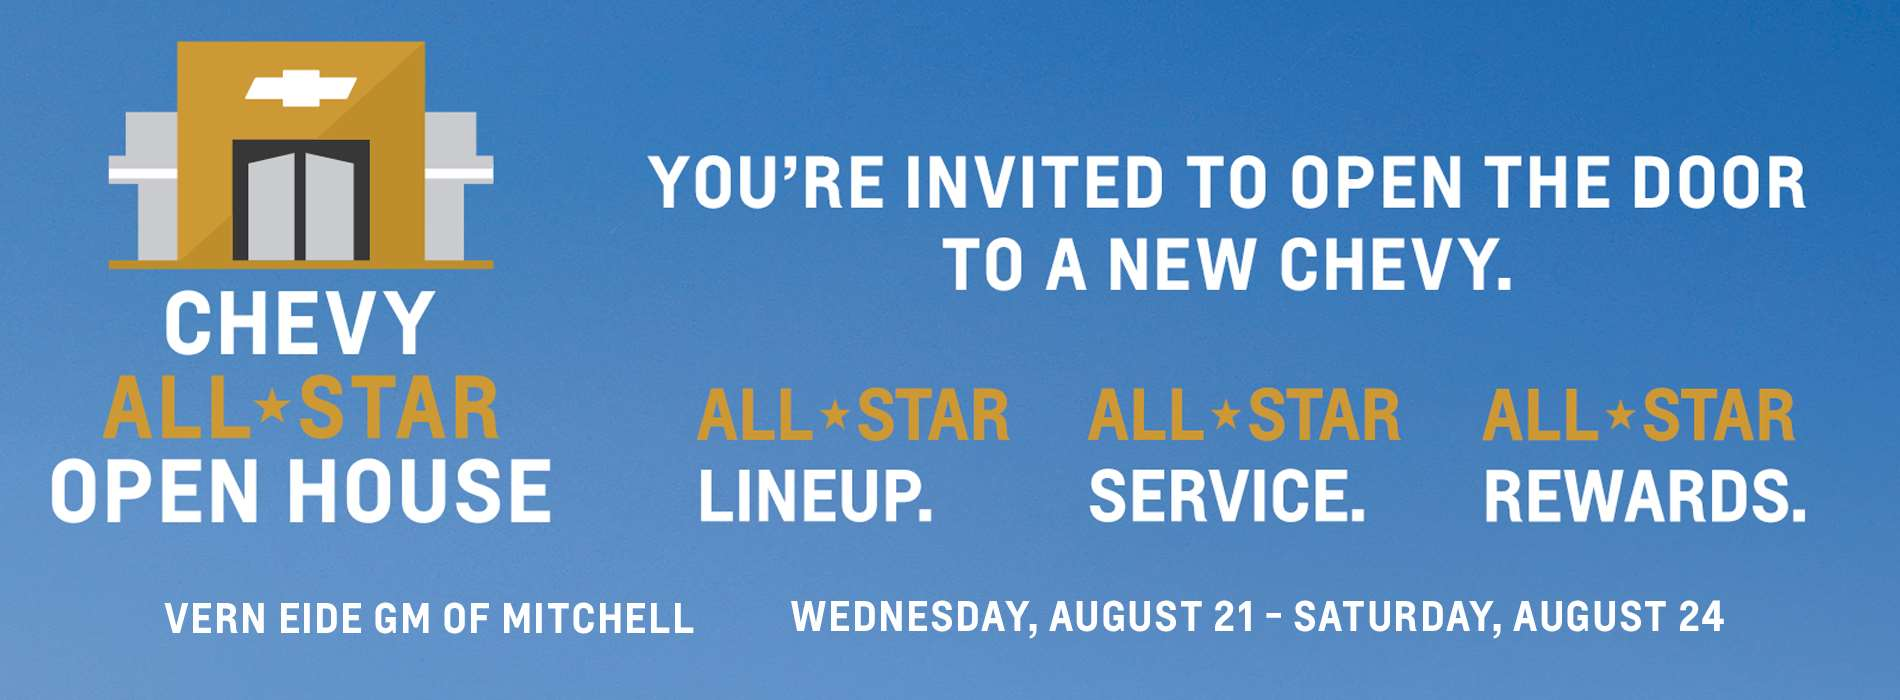 GM - All Star Open House - August 2019